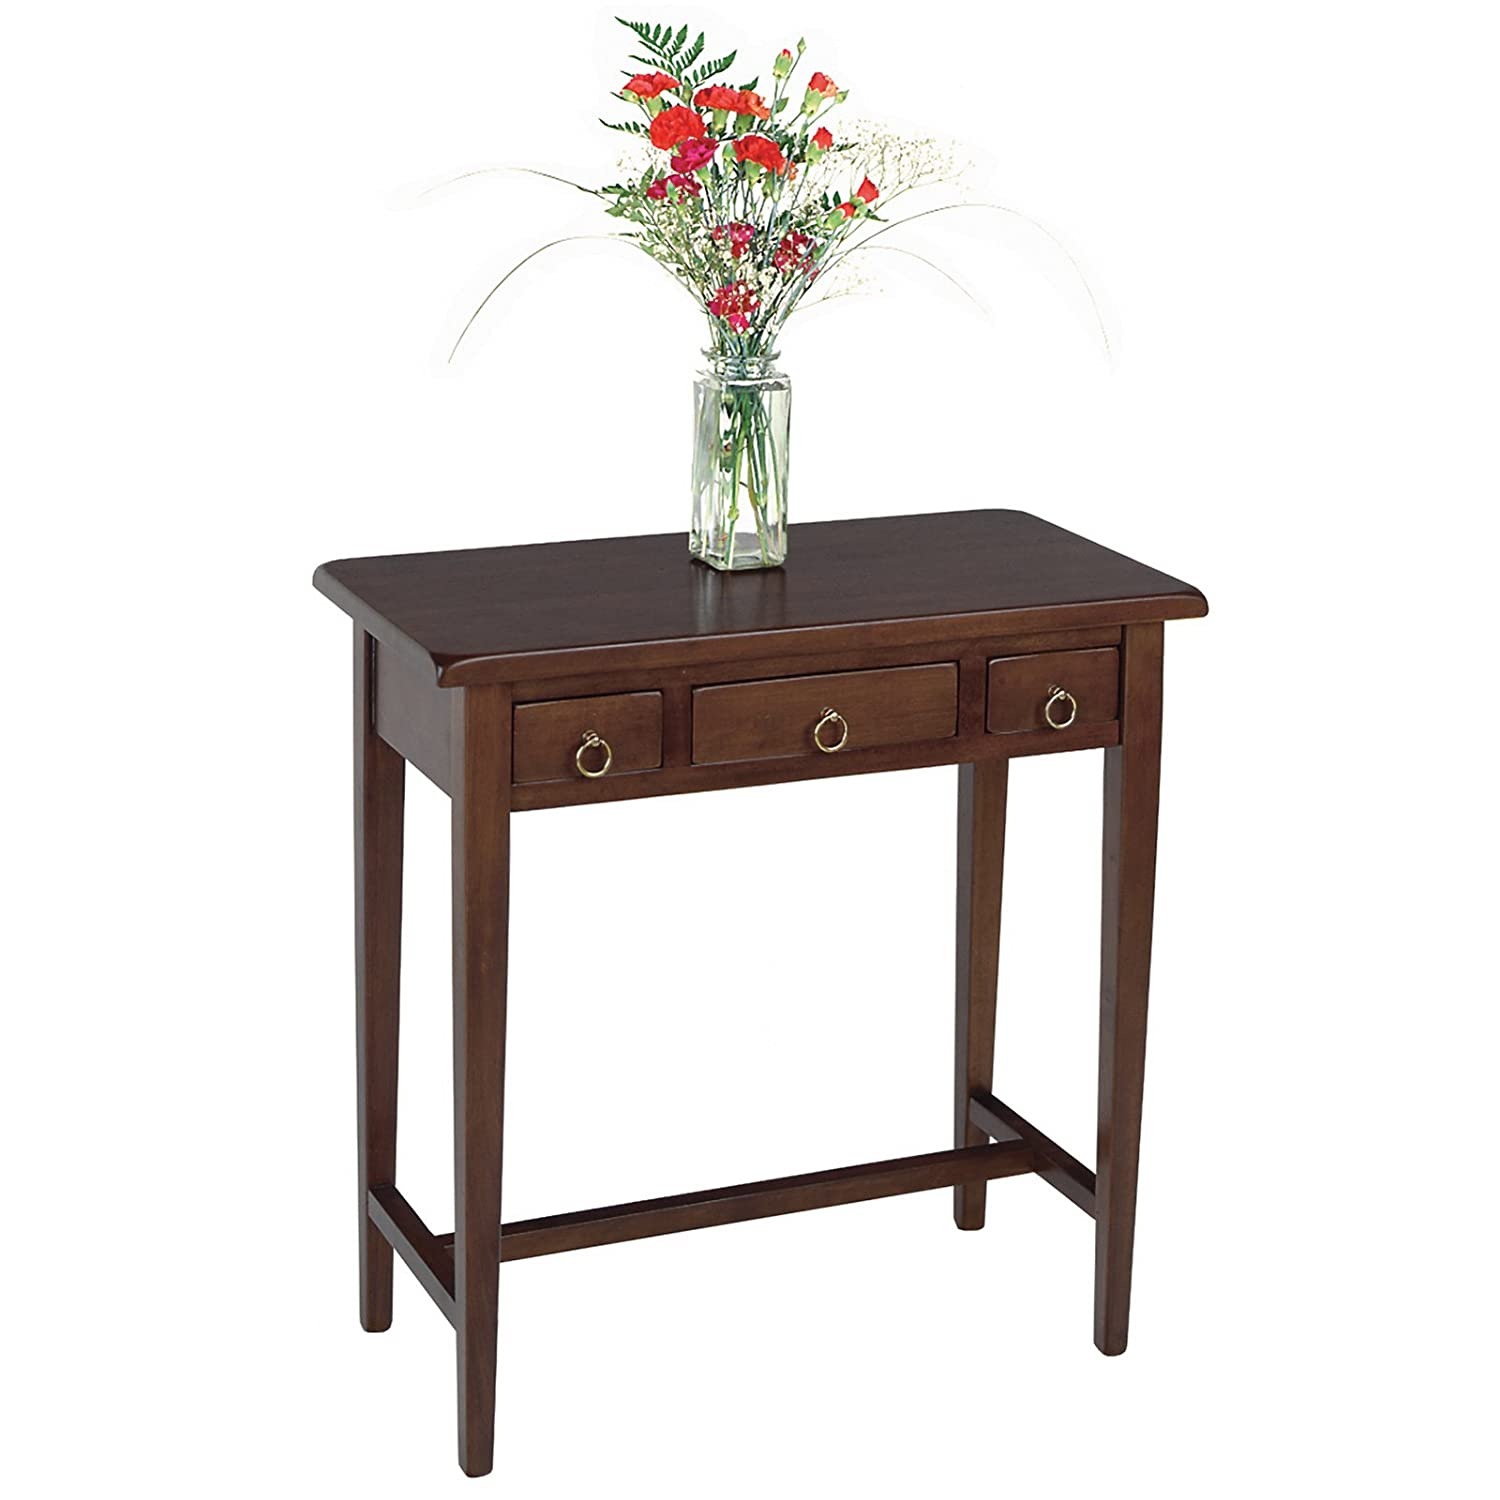 Amazon.com: Winsome Wood Hall Table With 3 Drawers, Walnut: Kitchen U0026 Dining